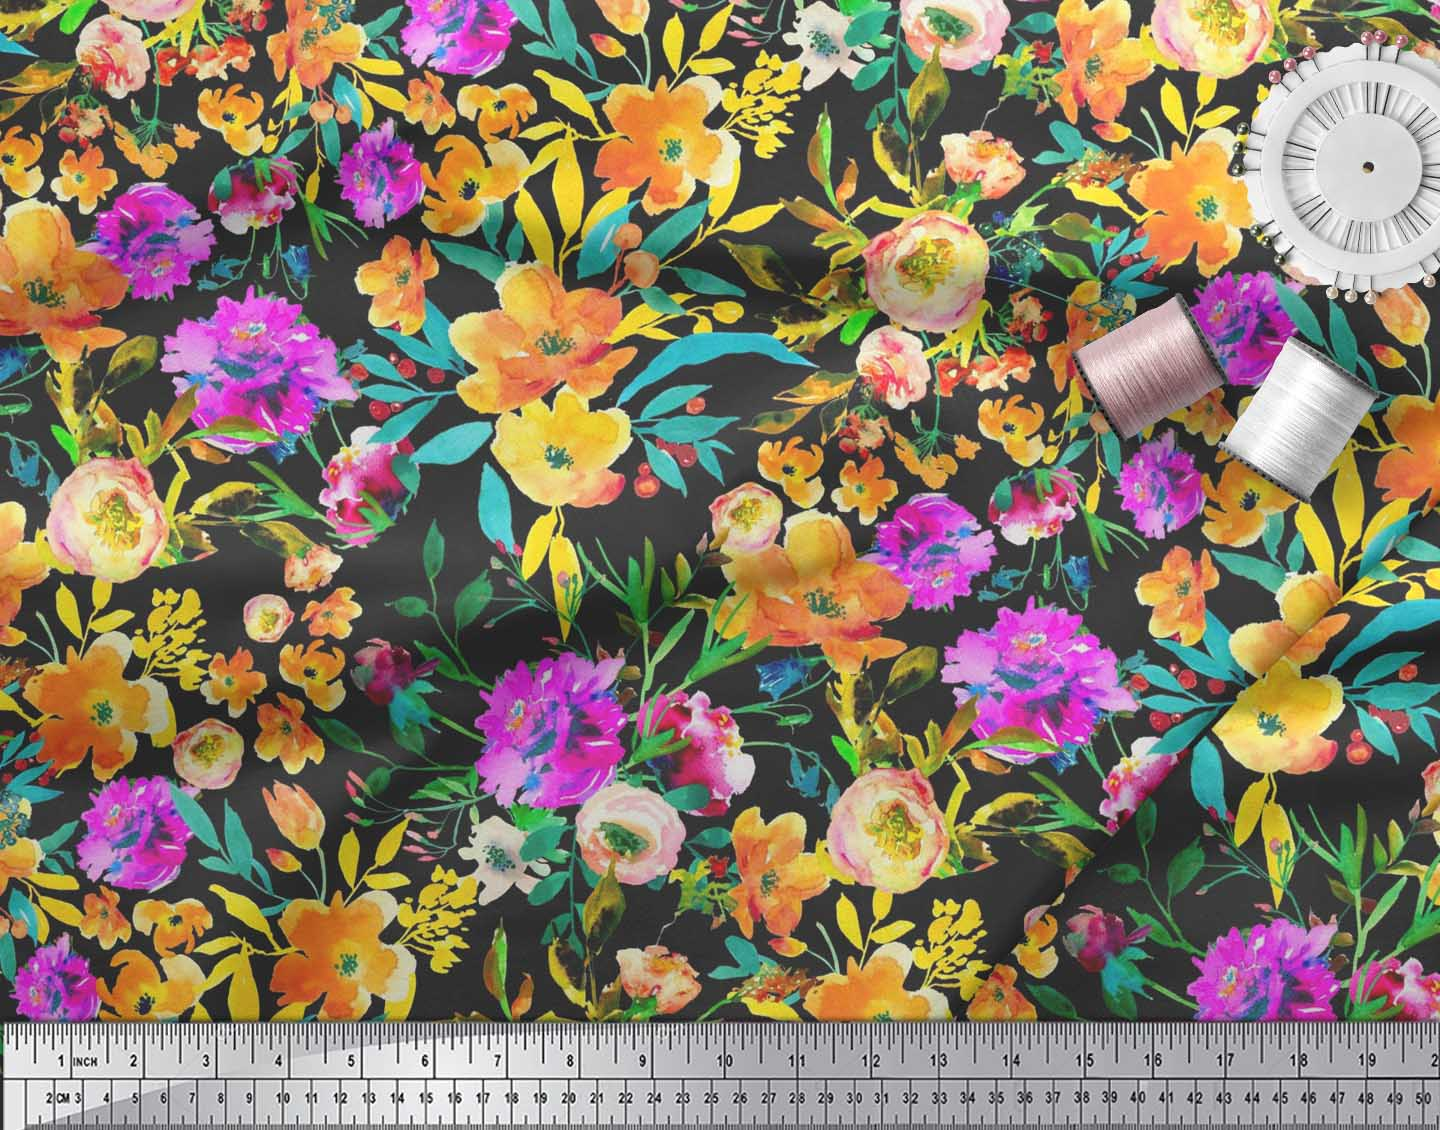 Soimoi-Cotton-Poplin-Fabric-Flower-amp-Leaves-Watercolor-Printed-Fabric-Oxu thumbnail 3